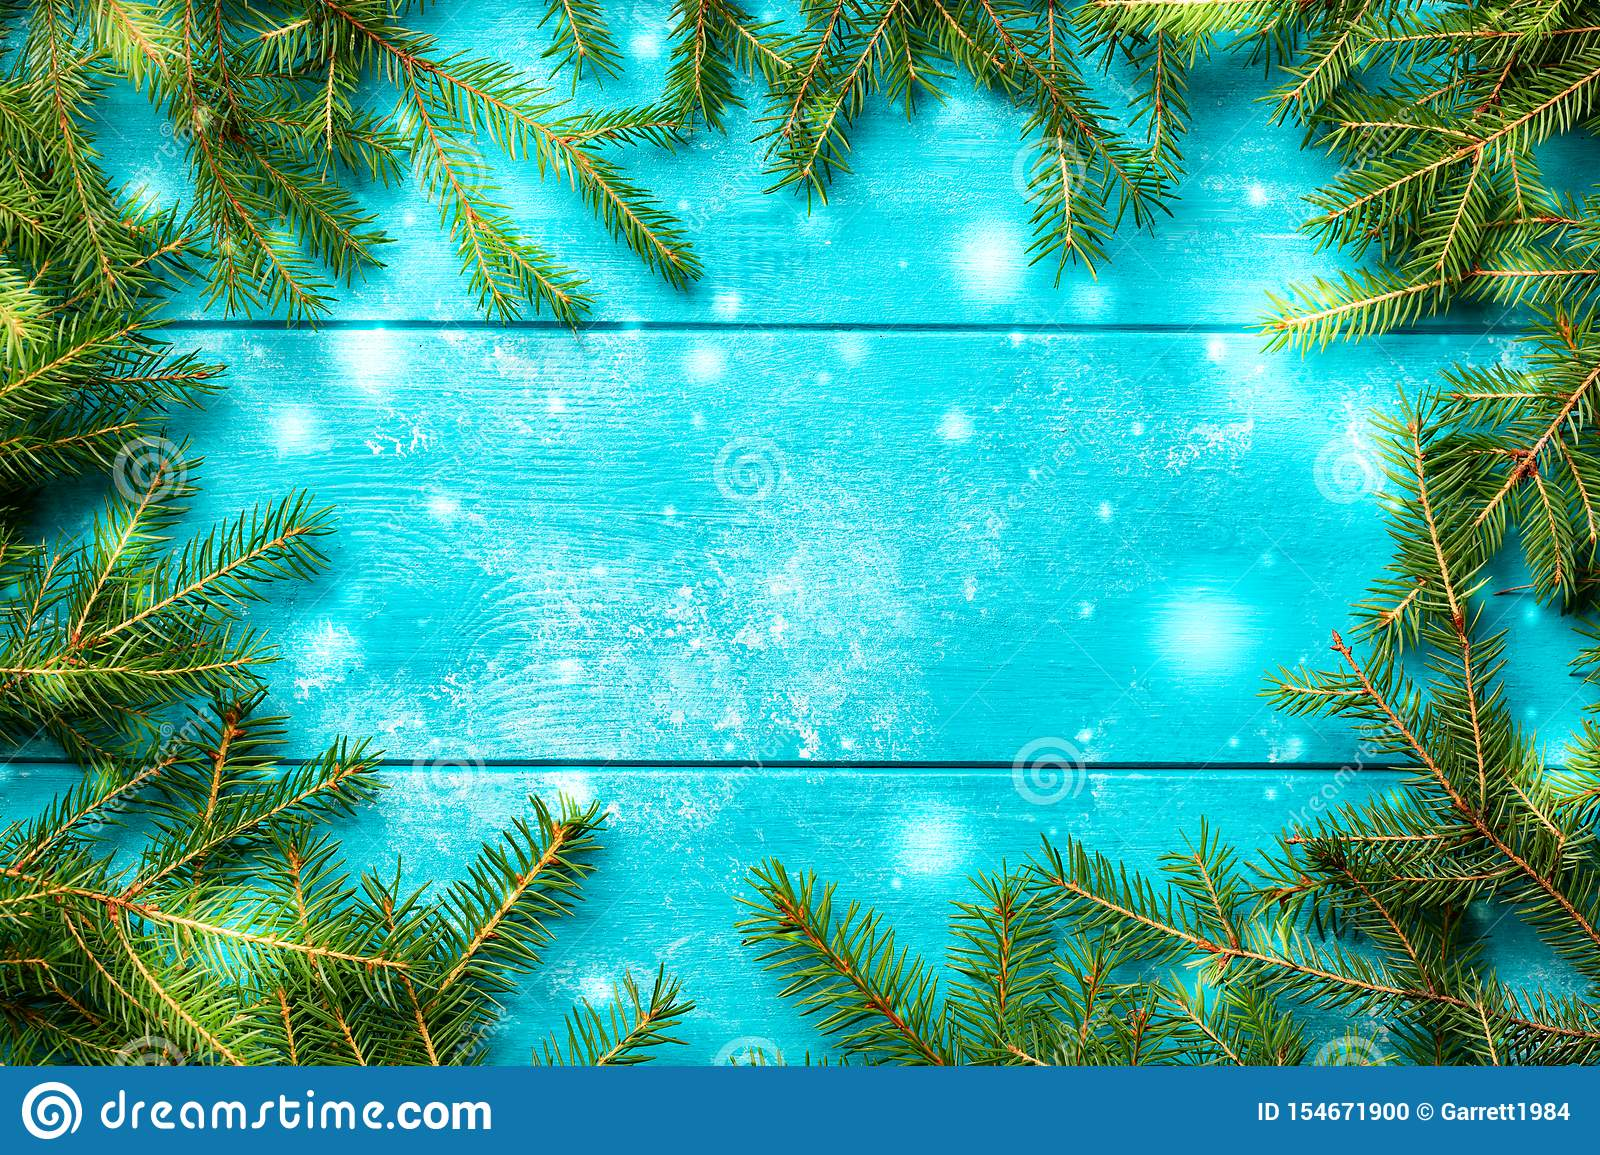 Christmas background. Christmas fir tree branches with snow on blue rustic wooden board with copy space